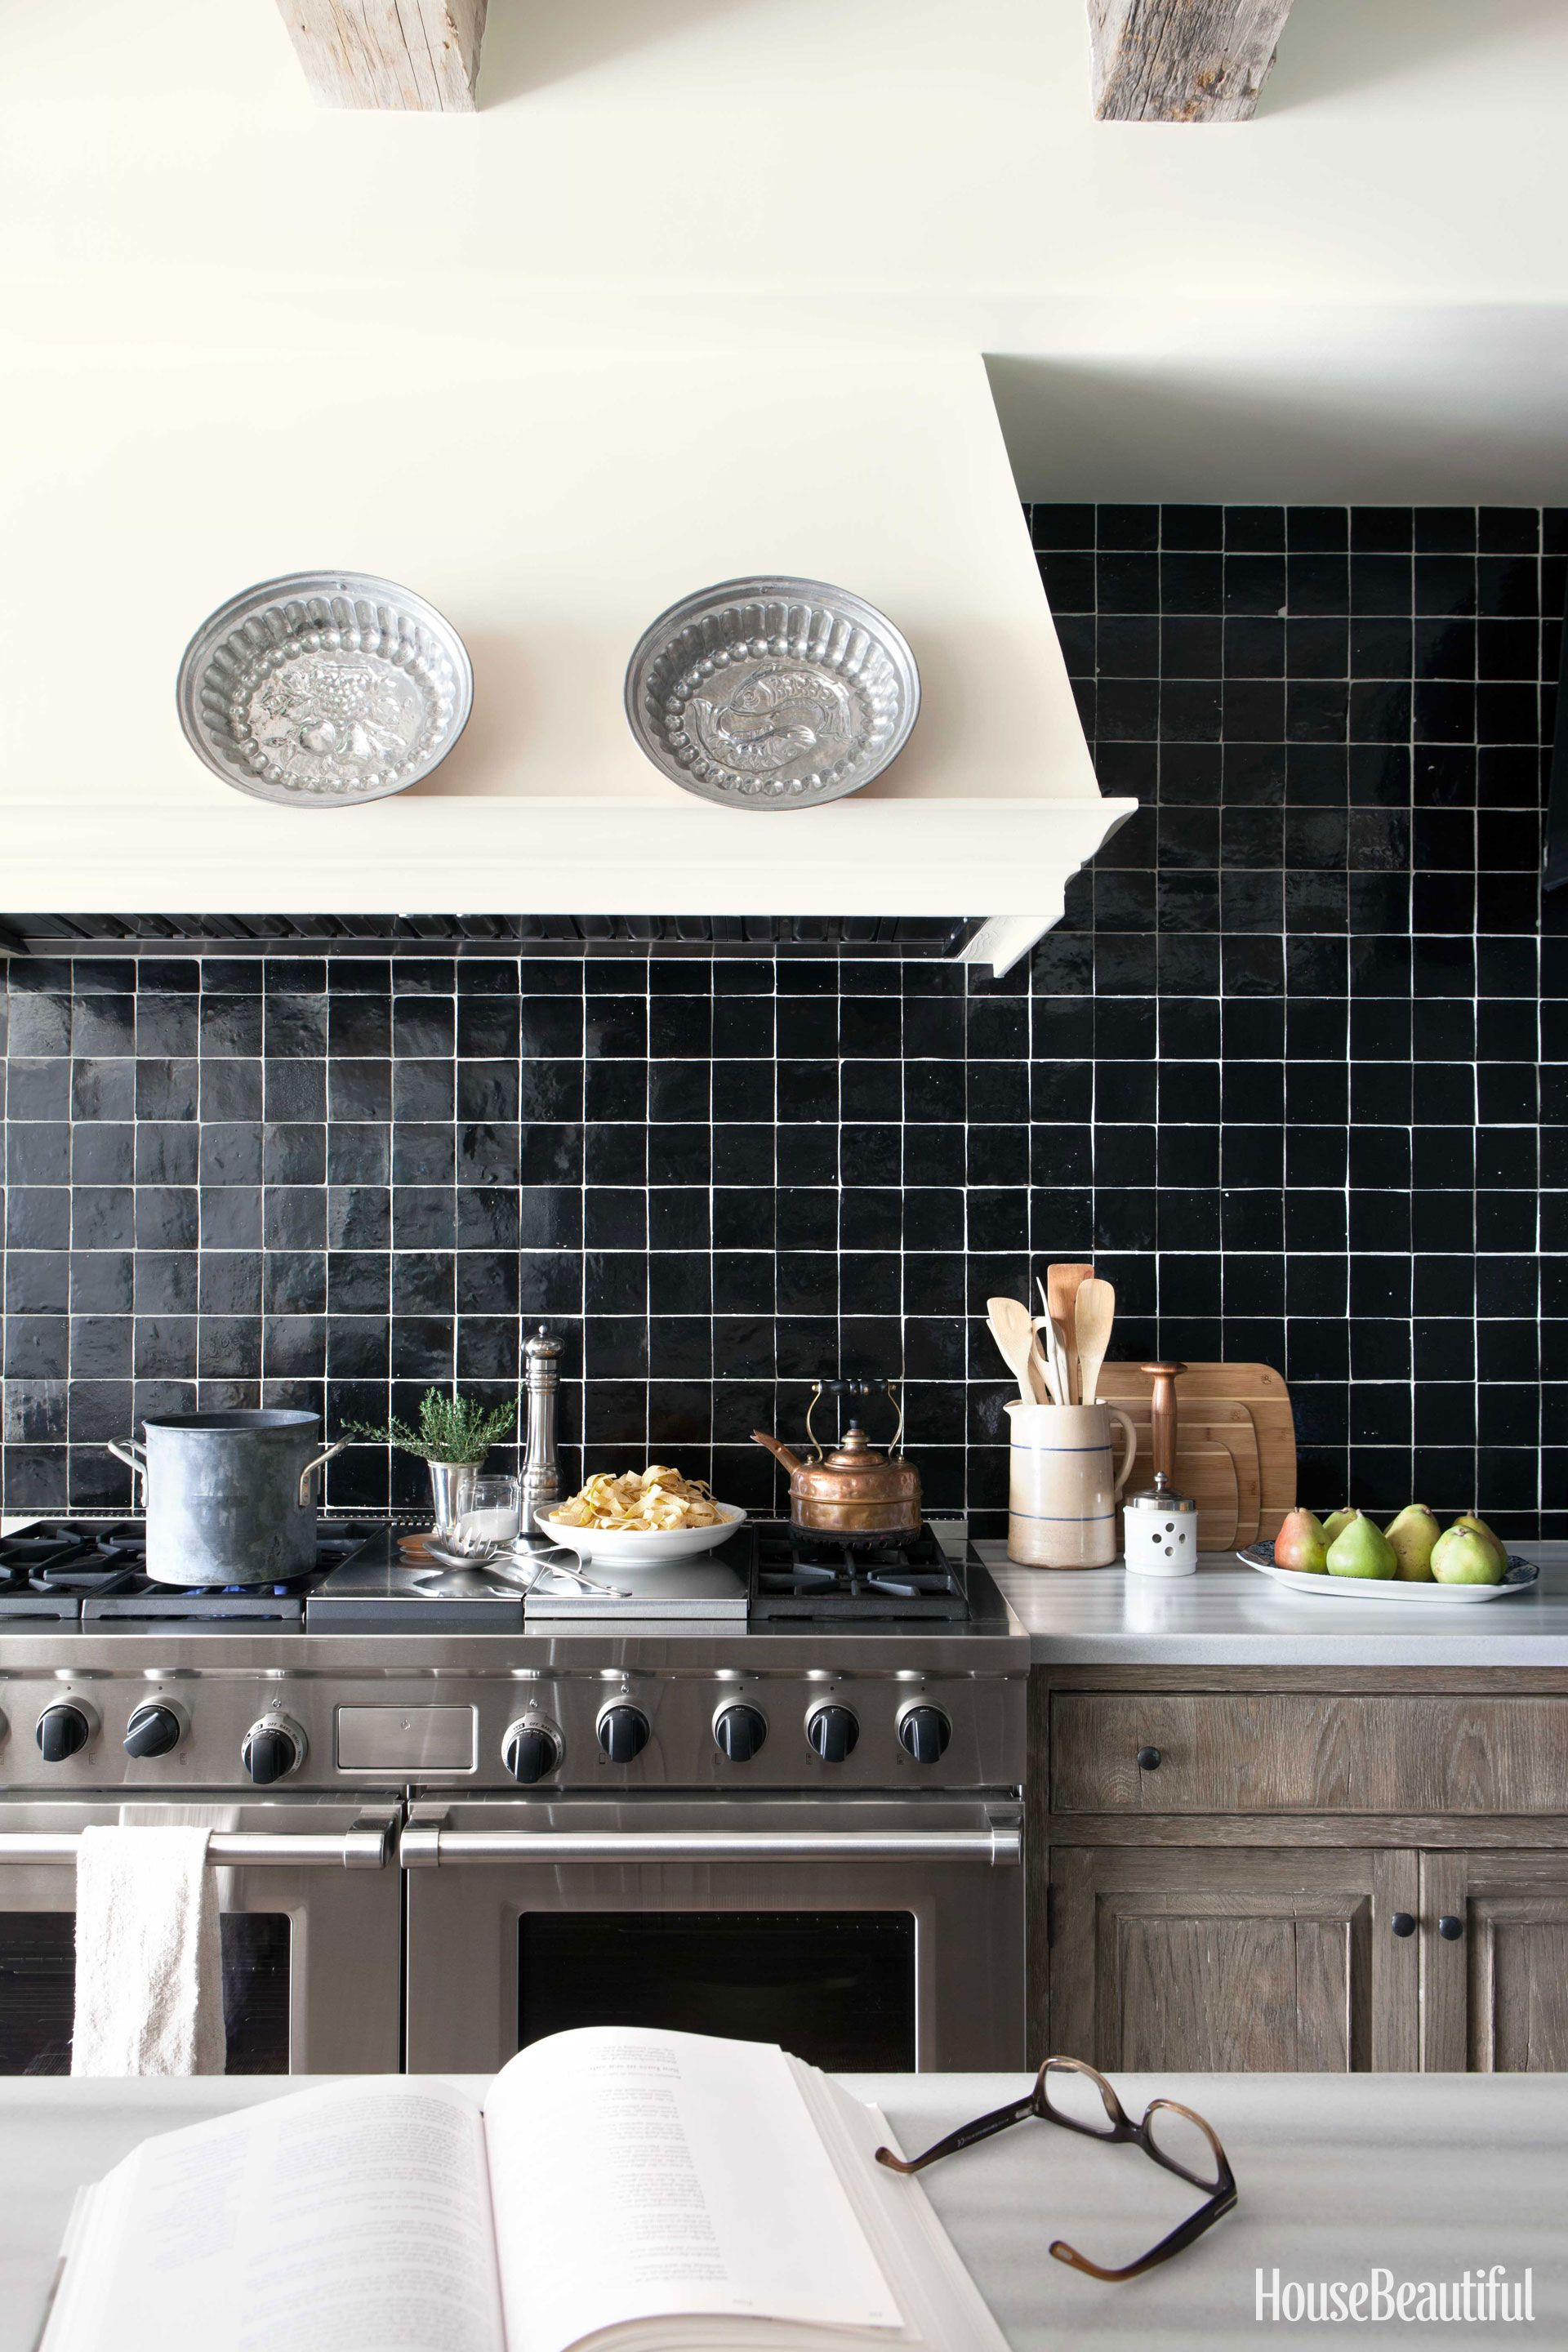 Best kitchen backsplash ideas tile designs for kitchen backsplashes dailygadgetfo Gallery